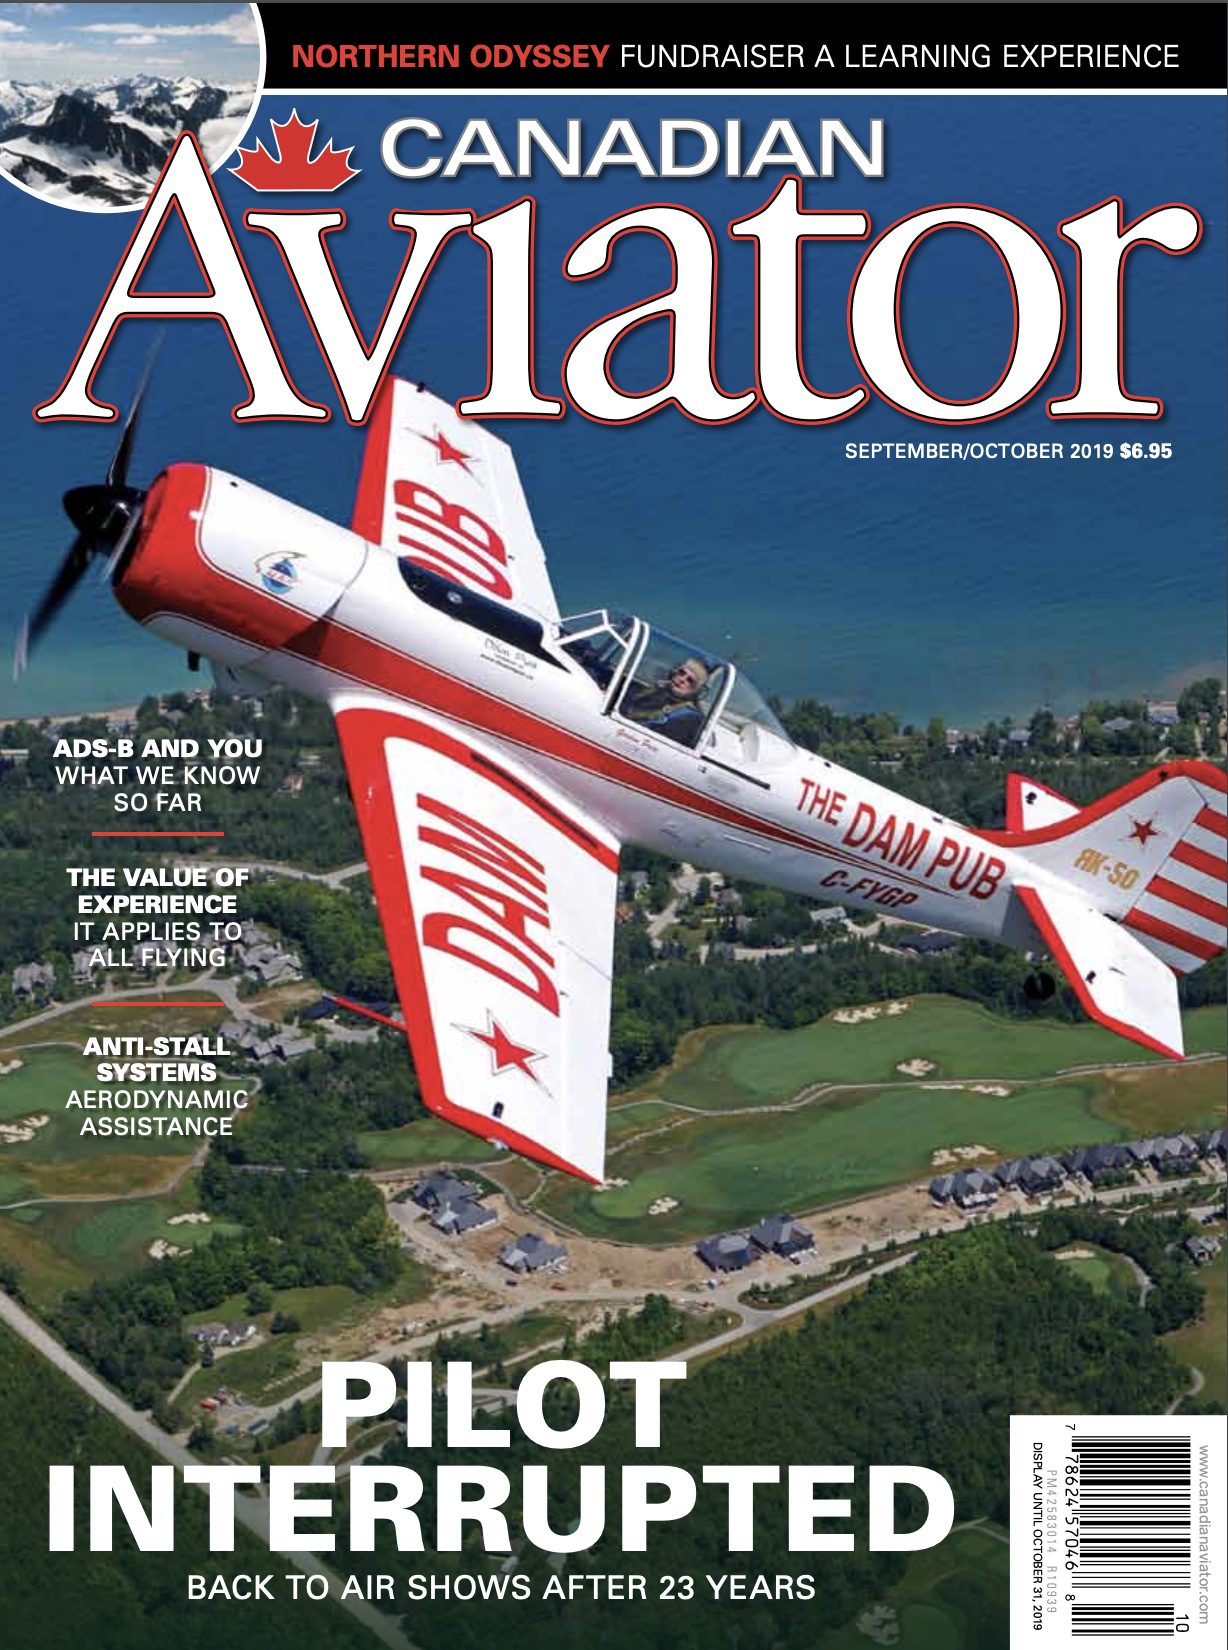 Canadian Aviator 2019 Sept-Oct cover